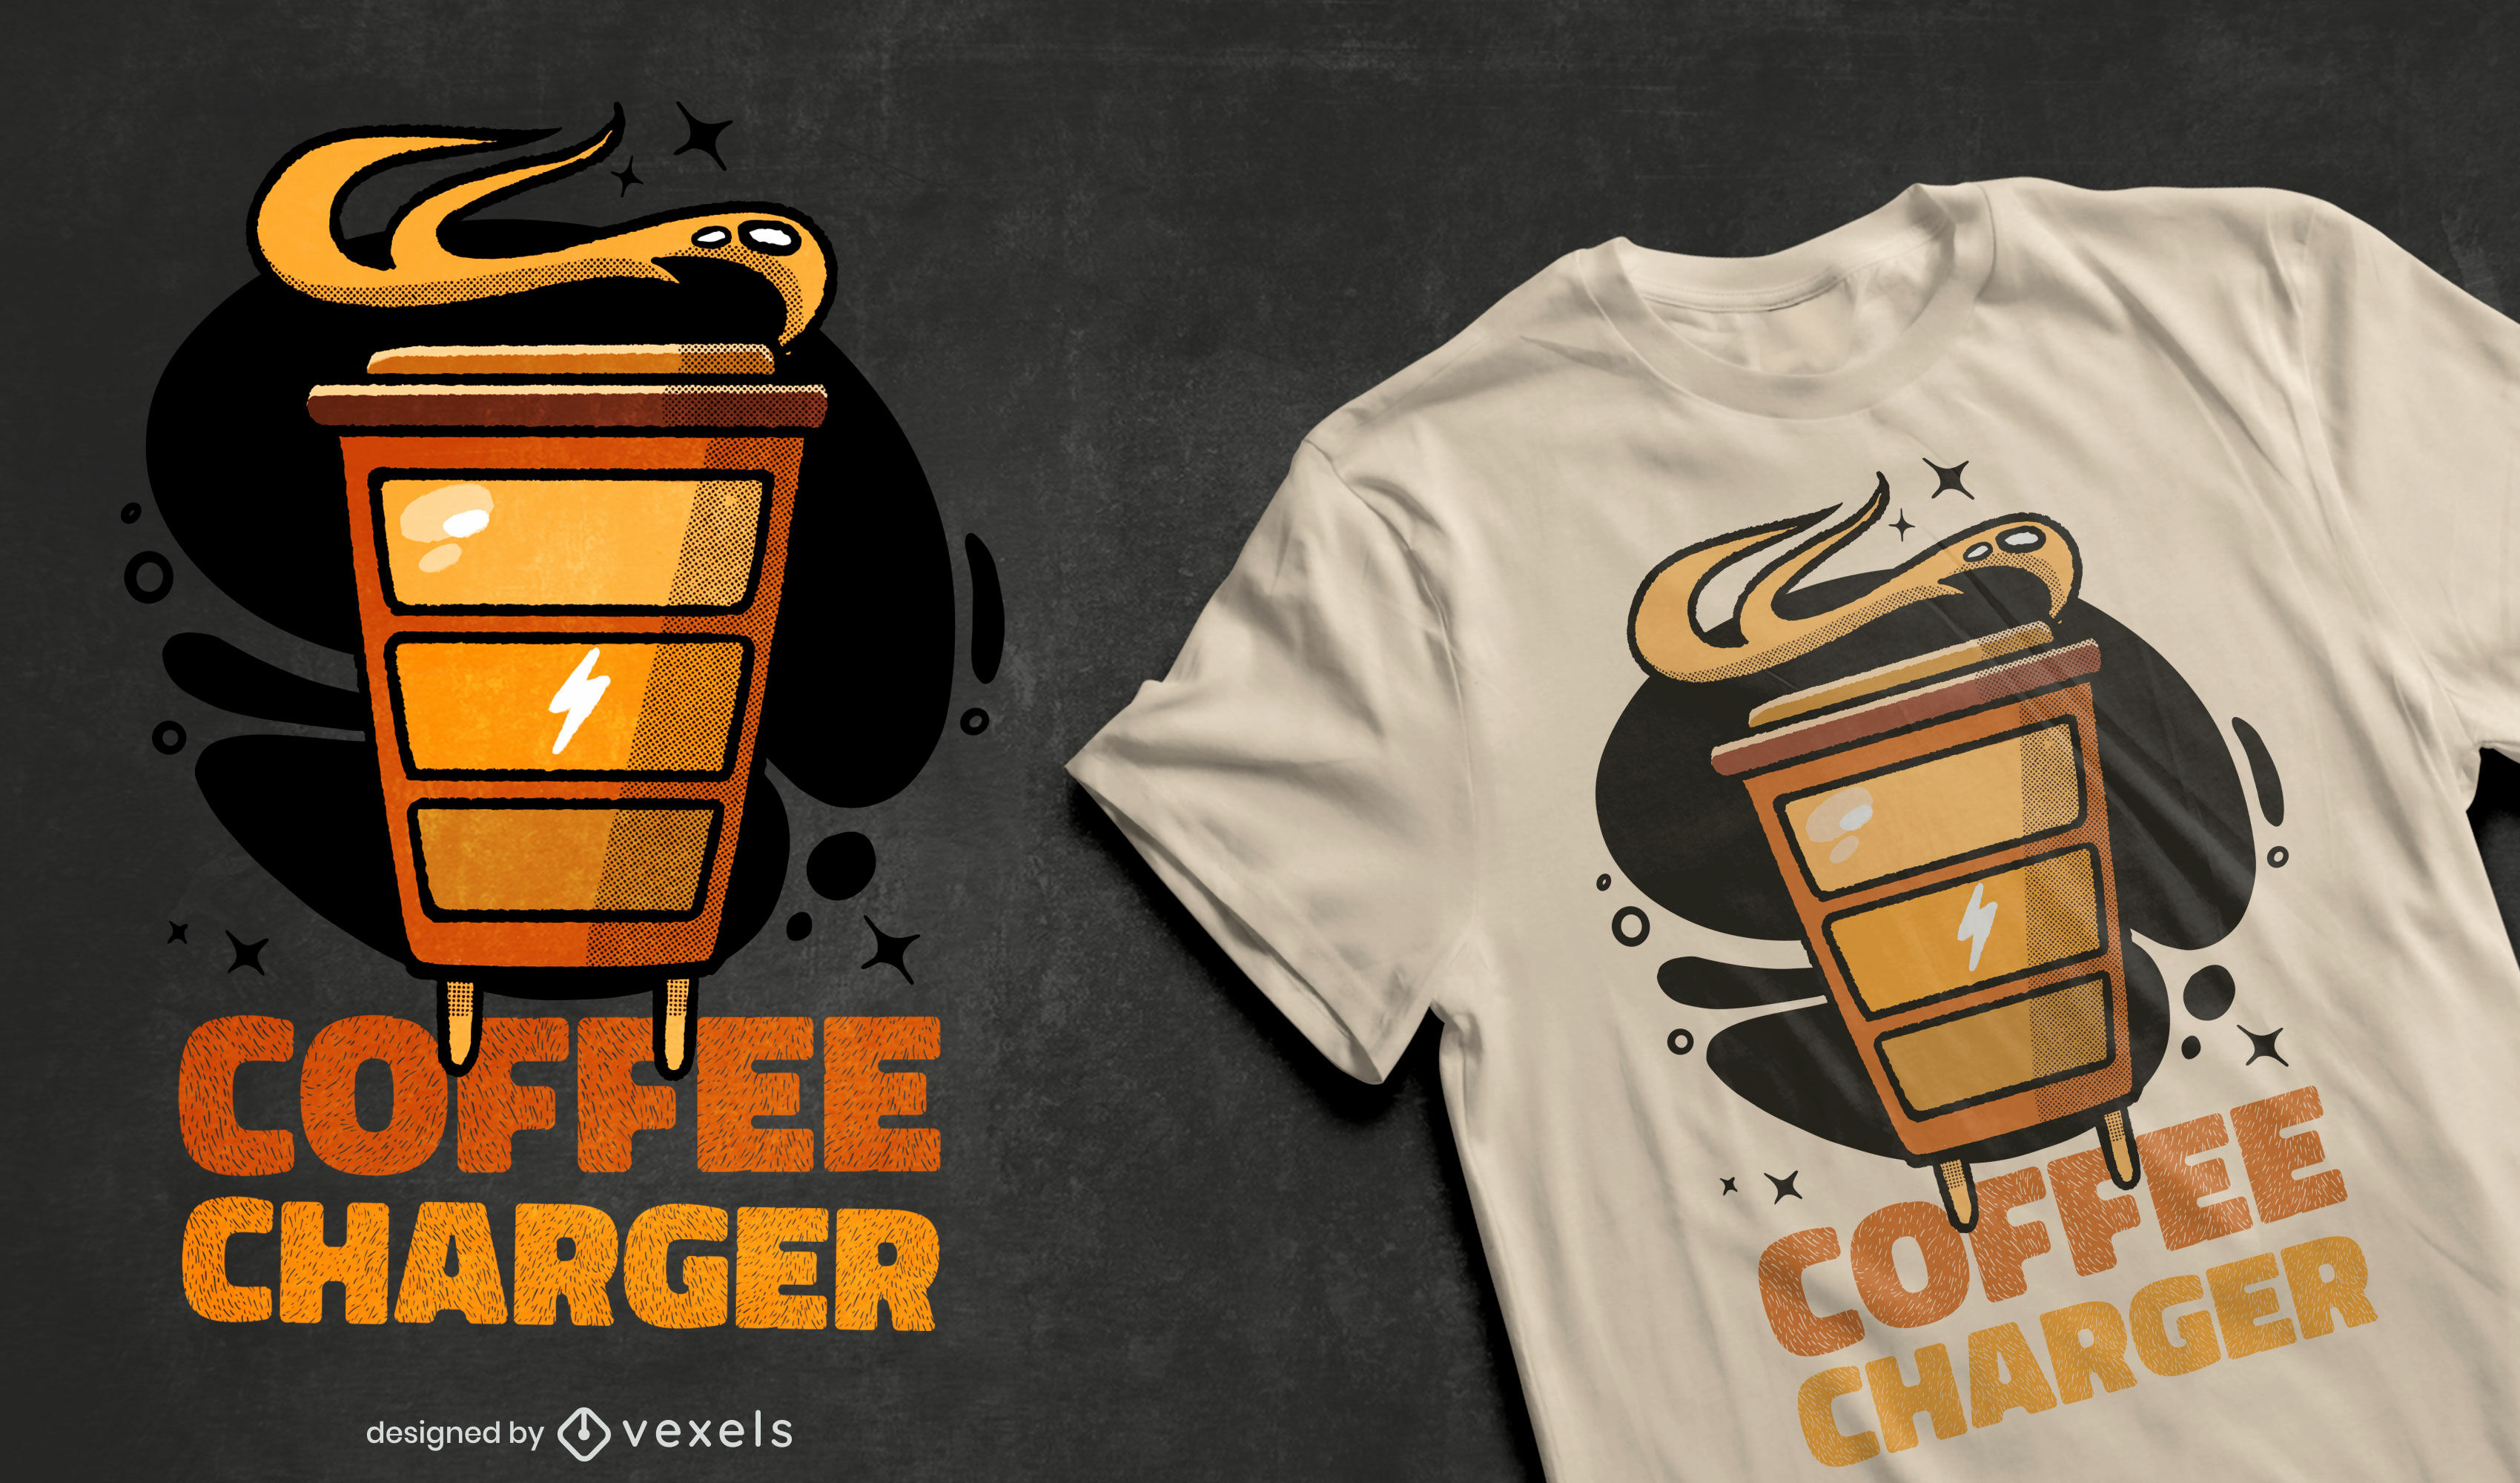 Coffee cup energy charger t-shirt design